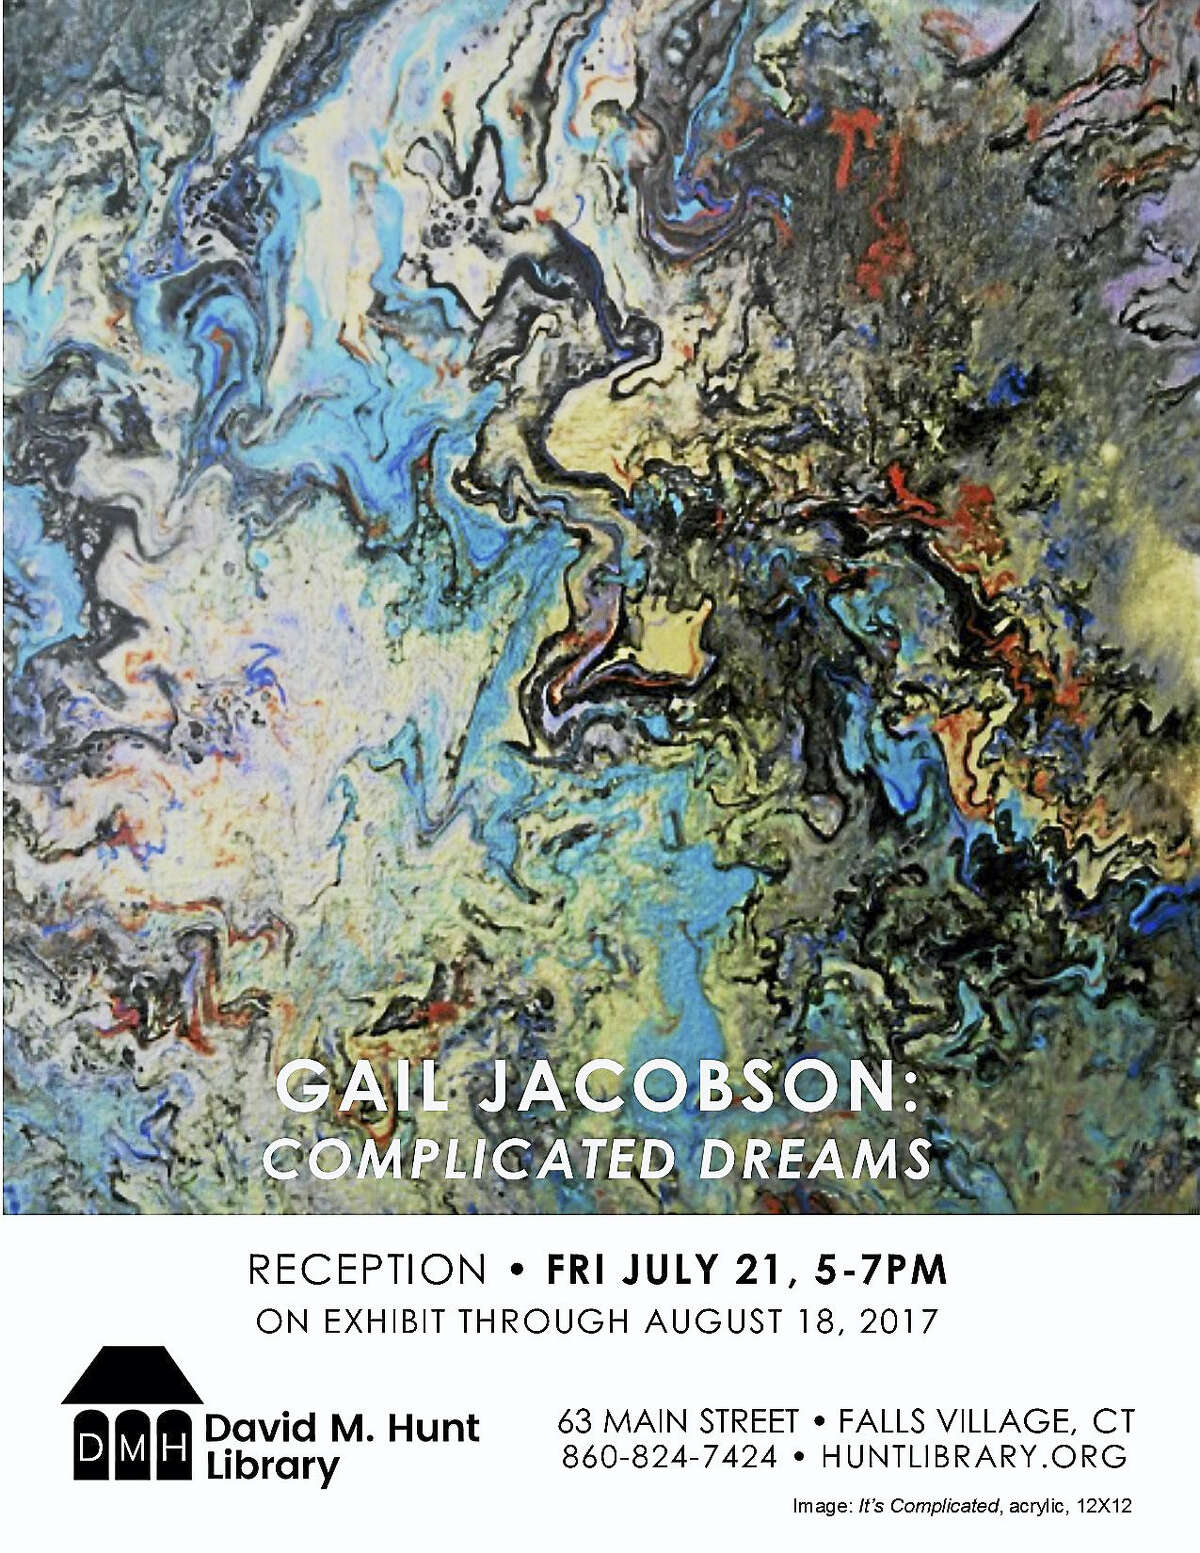 Paintings by Gail Jacobson will be featured at the Hunt Library in Falls Village.